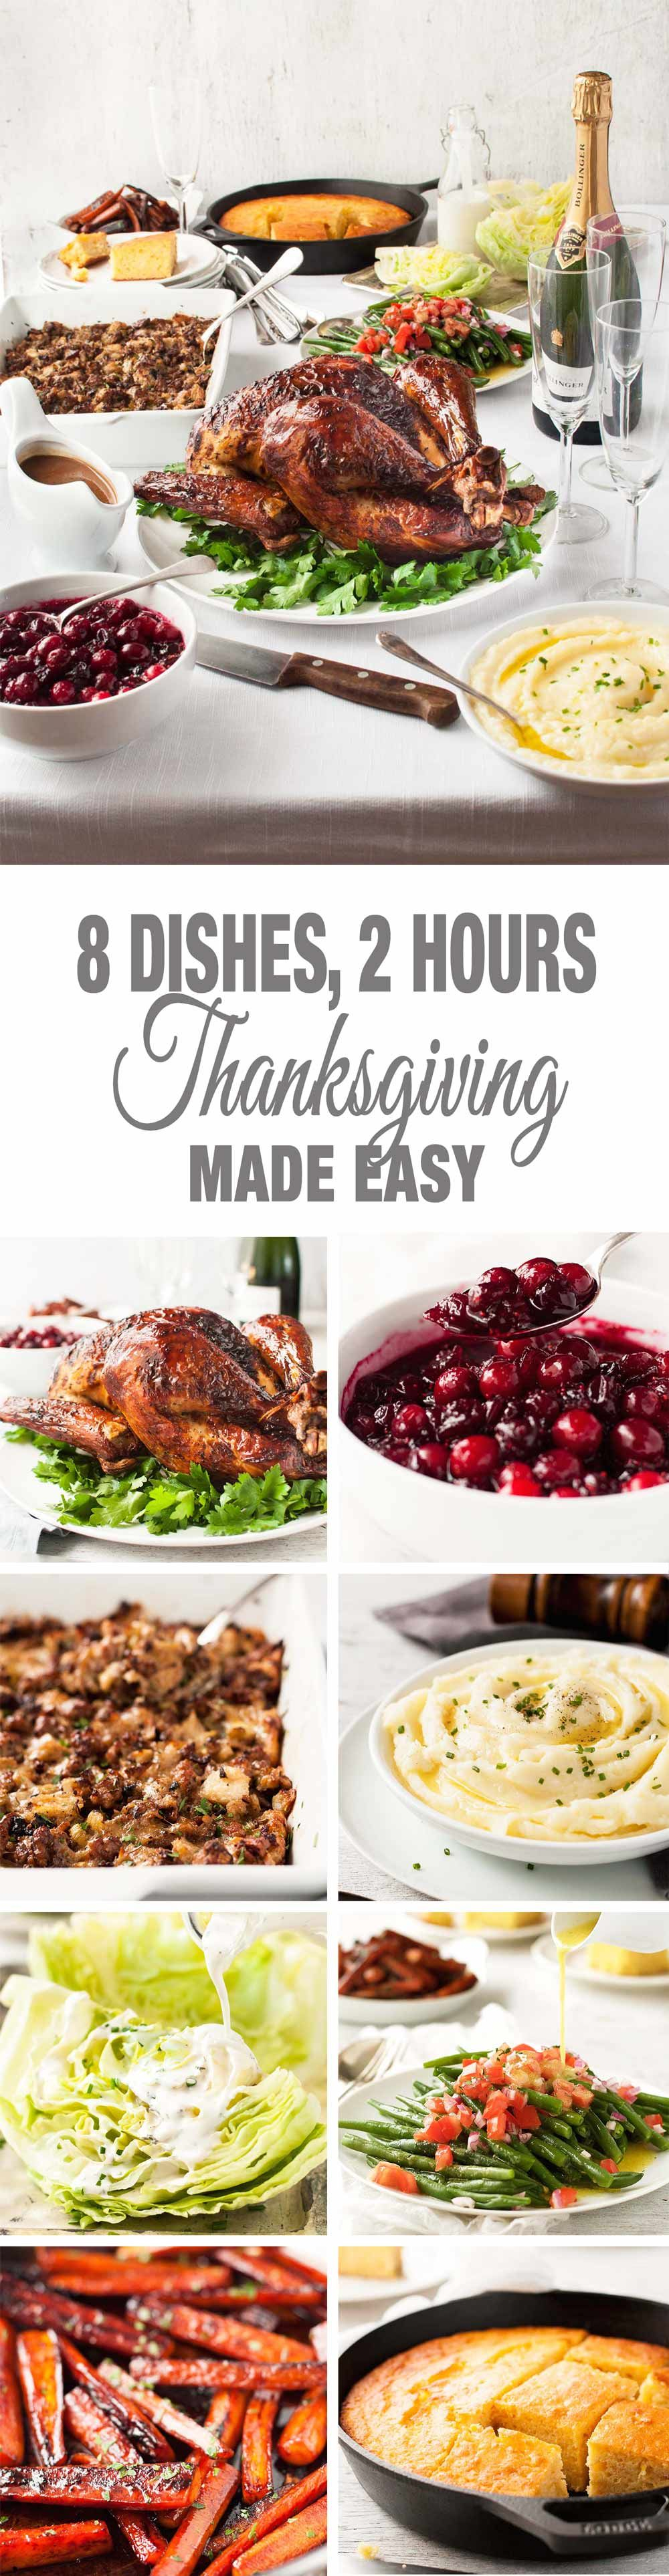 Easy Thanksgiving Menu - 8 dishes, 2 hours, largely make ahead